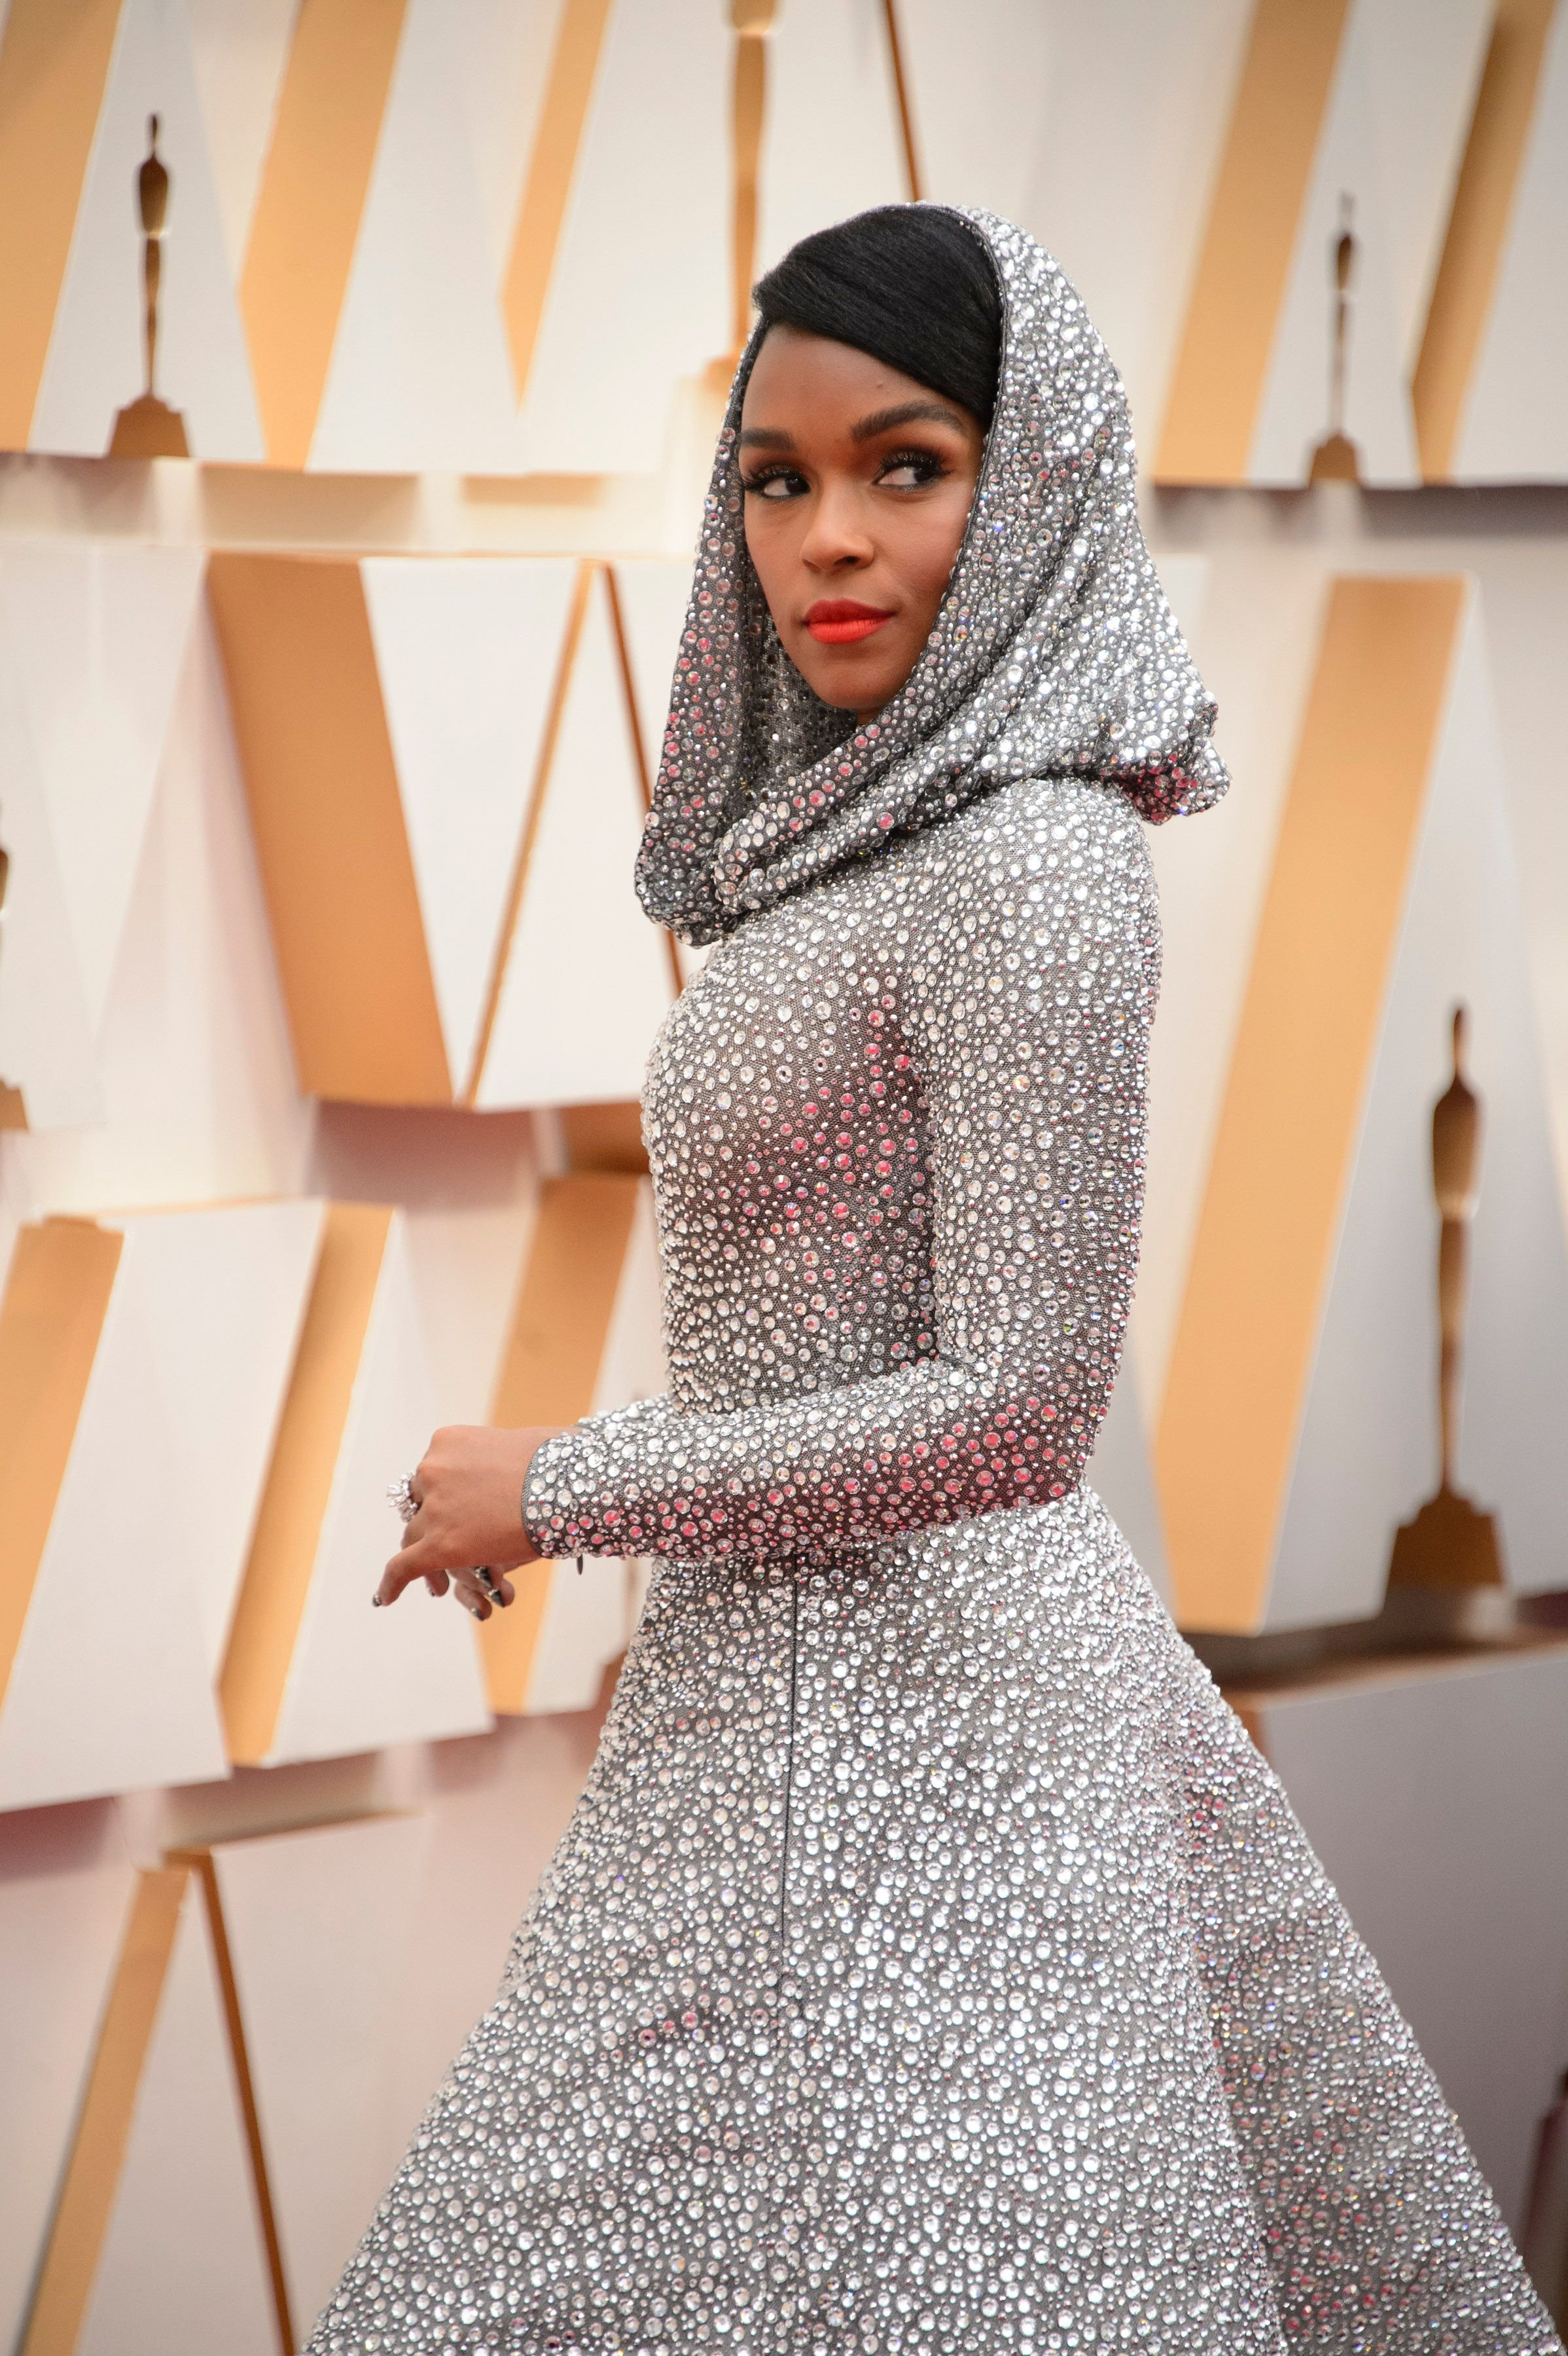 ABC coverage of the 92nd Oscars® which broadcast live on Sunday, Feb. 9, 2020 at the Dolby Theatre® in Hollywood. | Photo: Getty Images